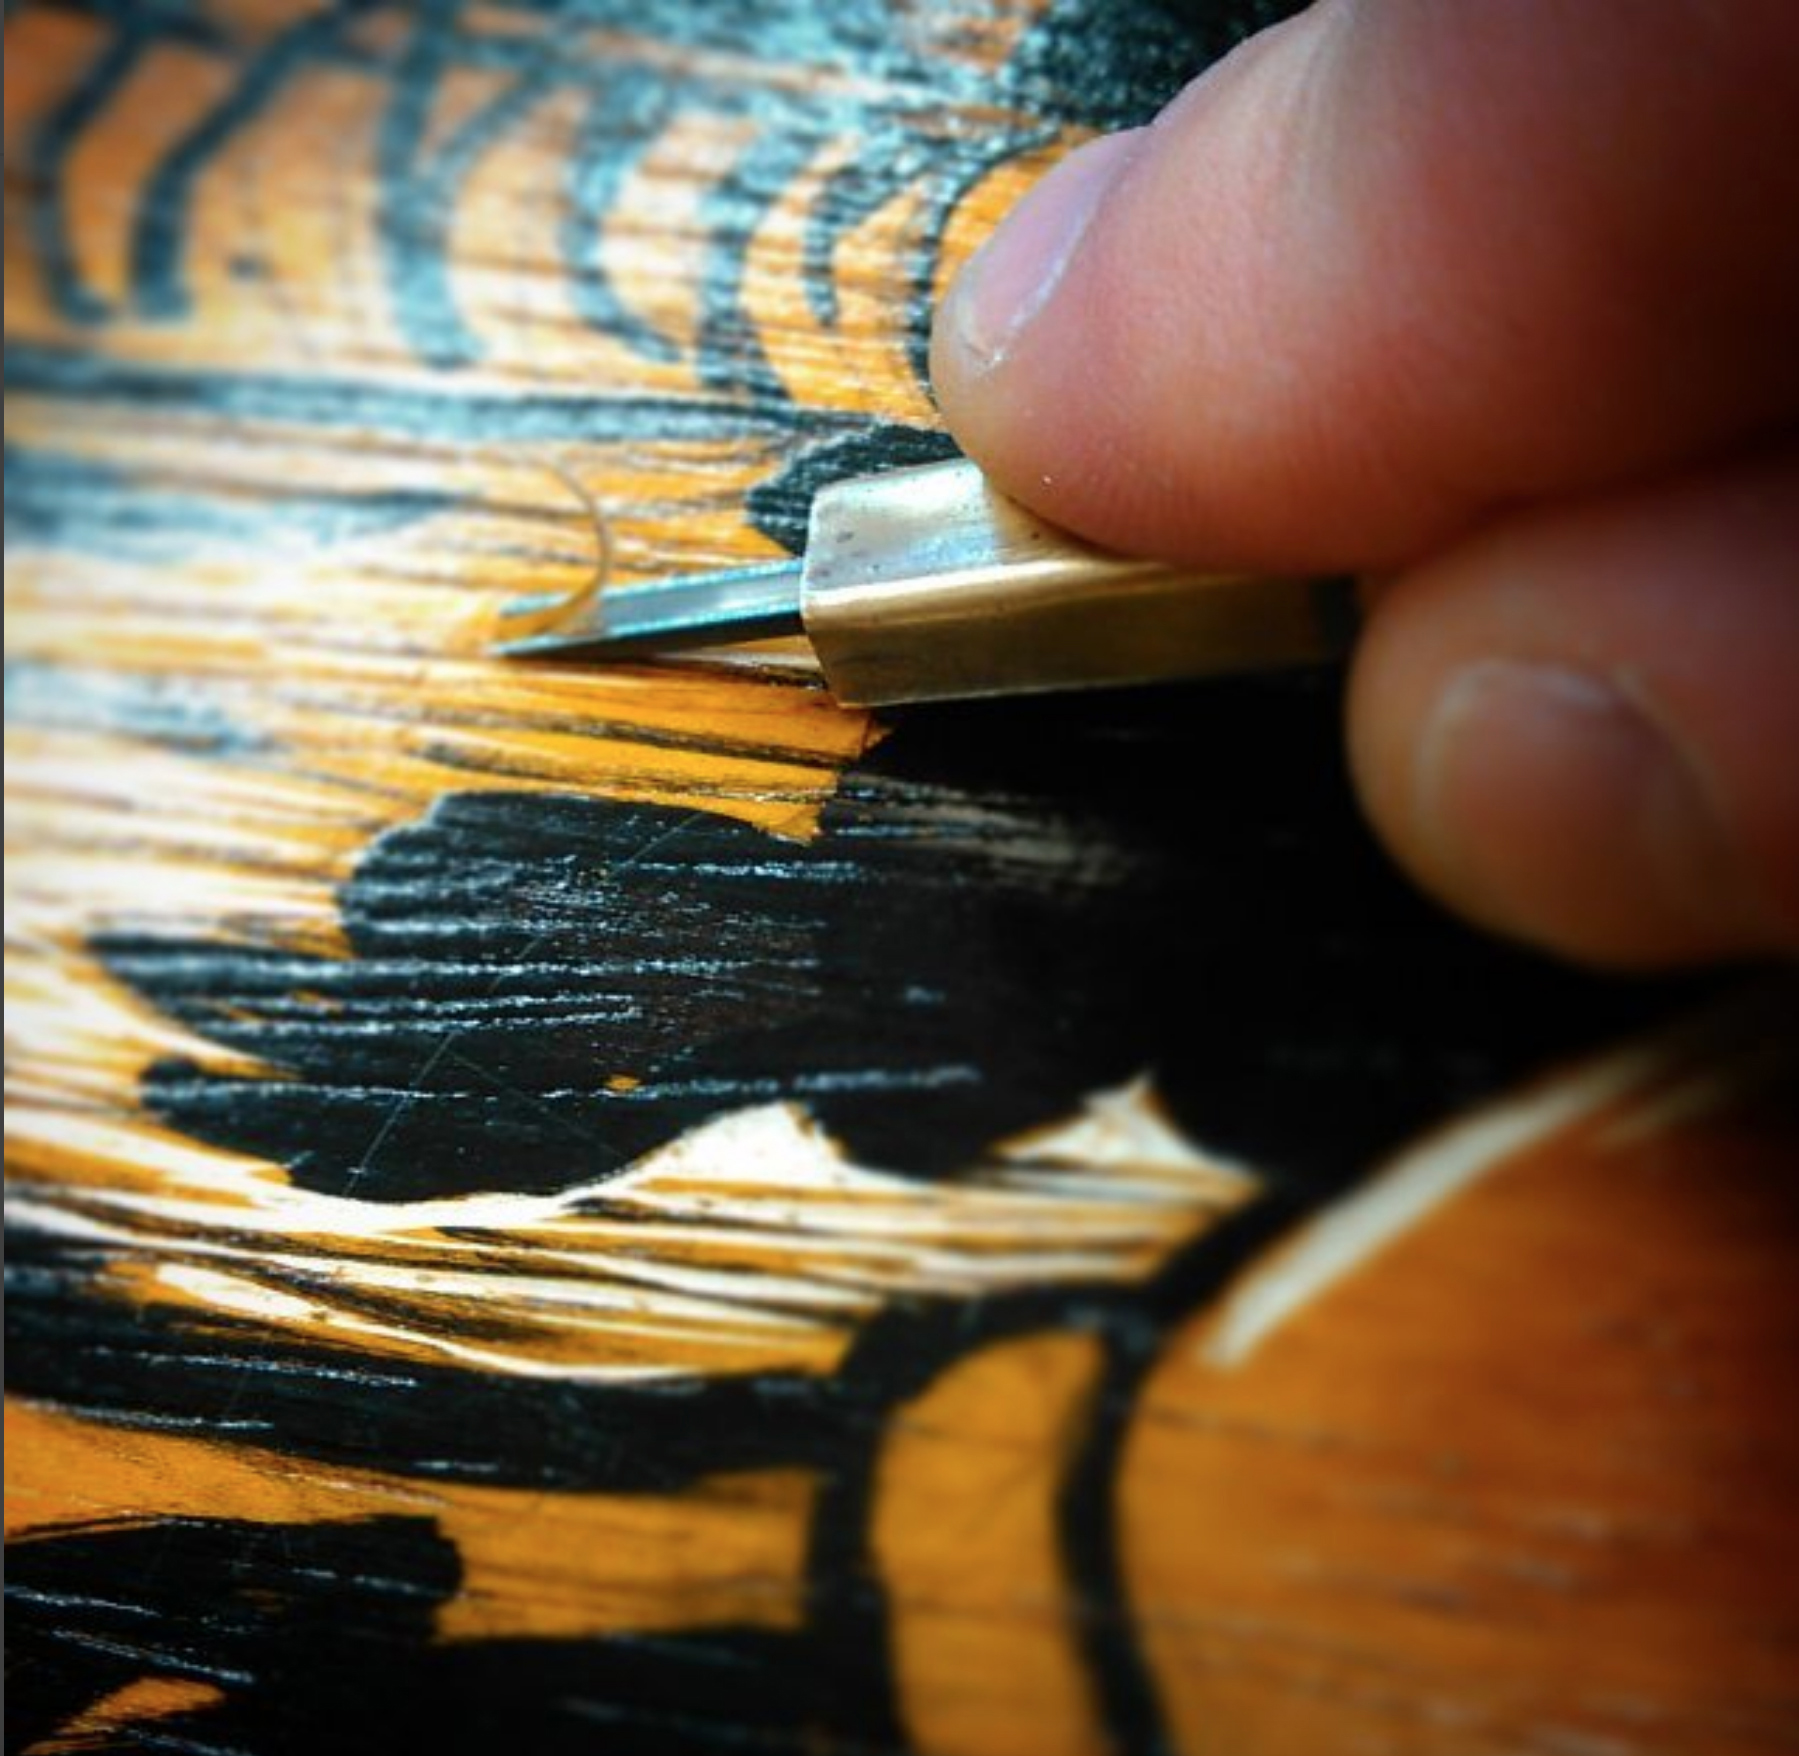 Professor Haig Demarjian prepares a woodcut for his latest series of work.